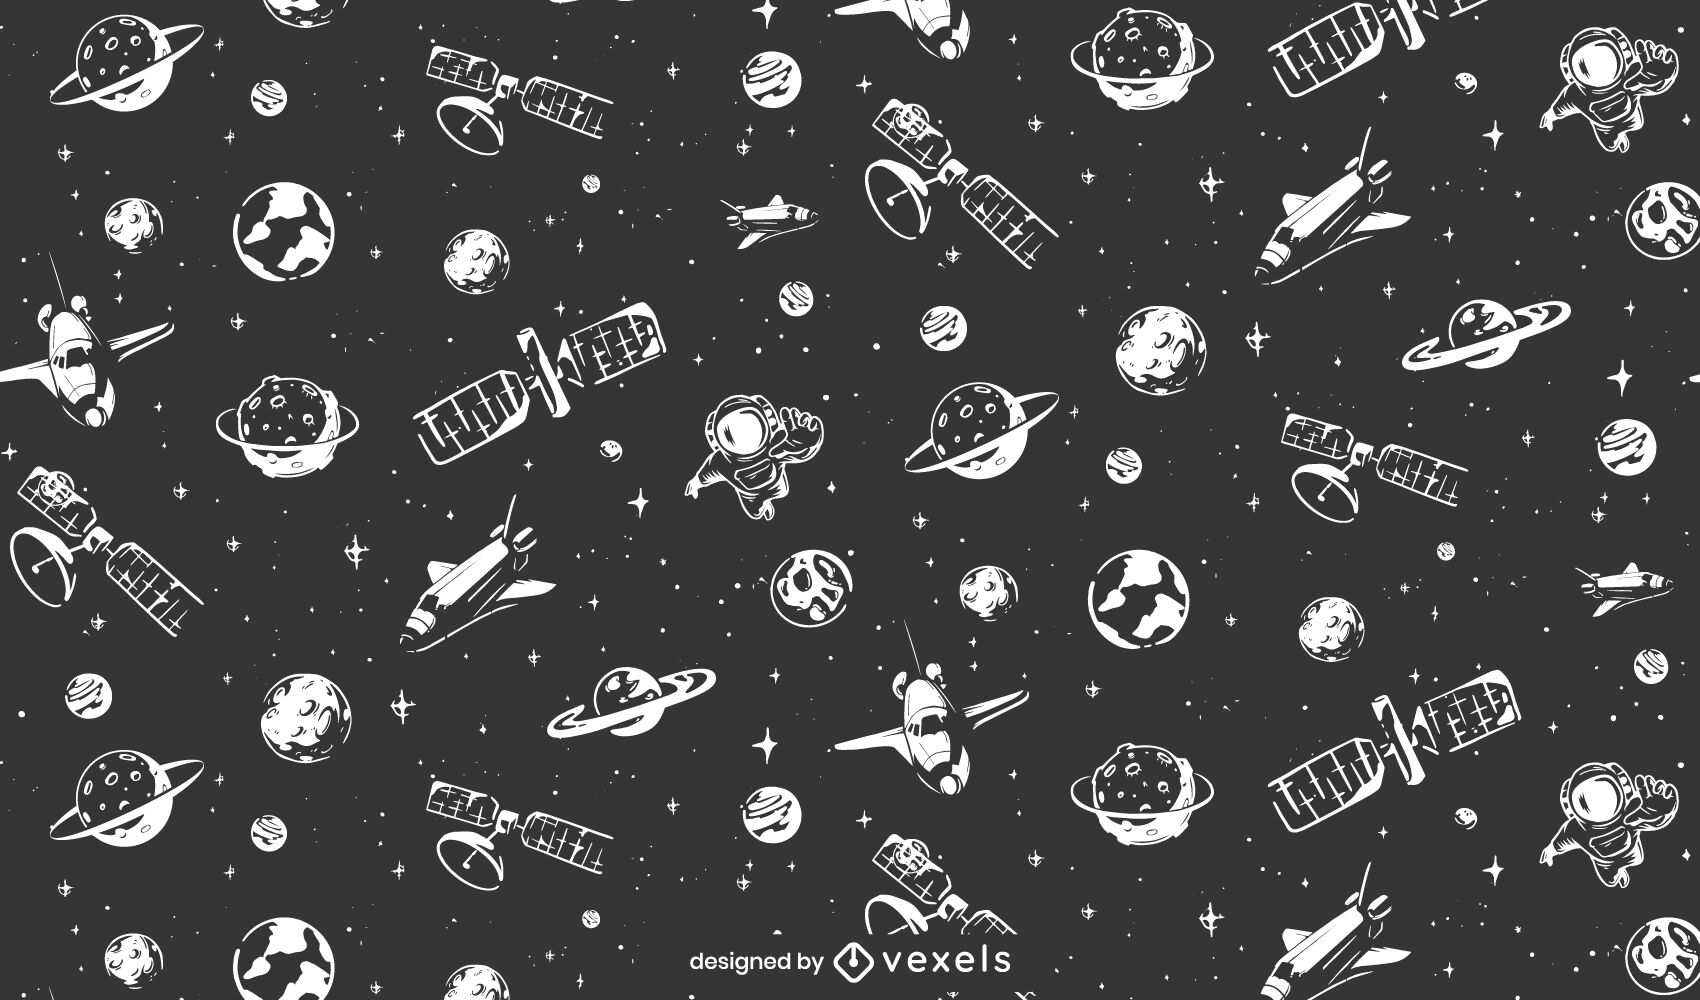 Planets and satellites space pattern design